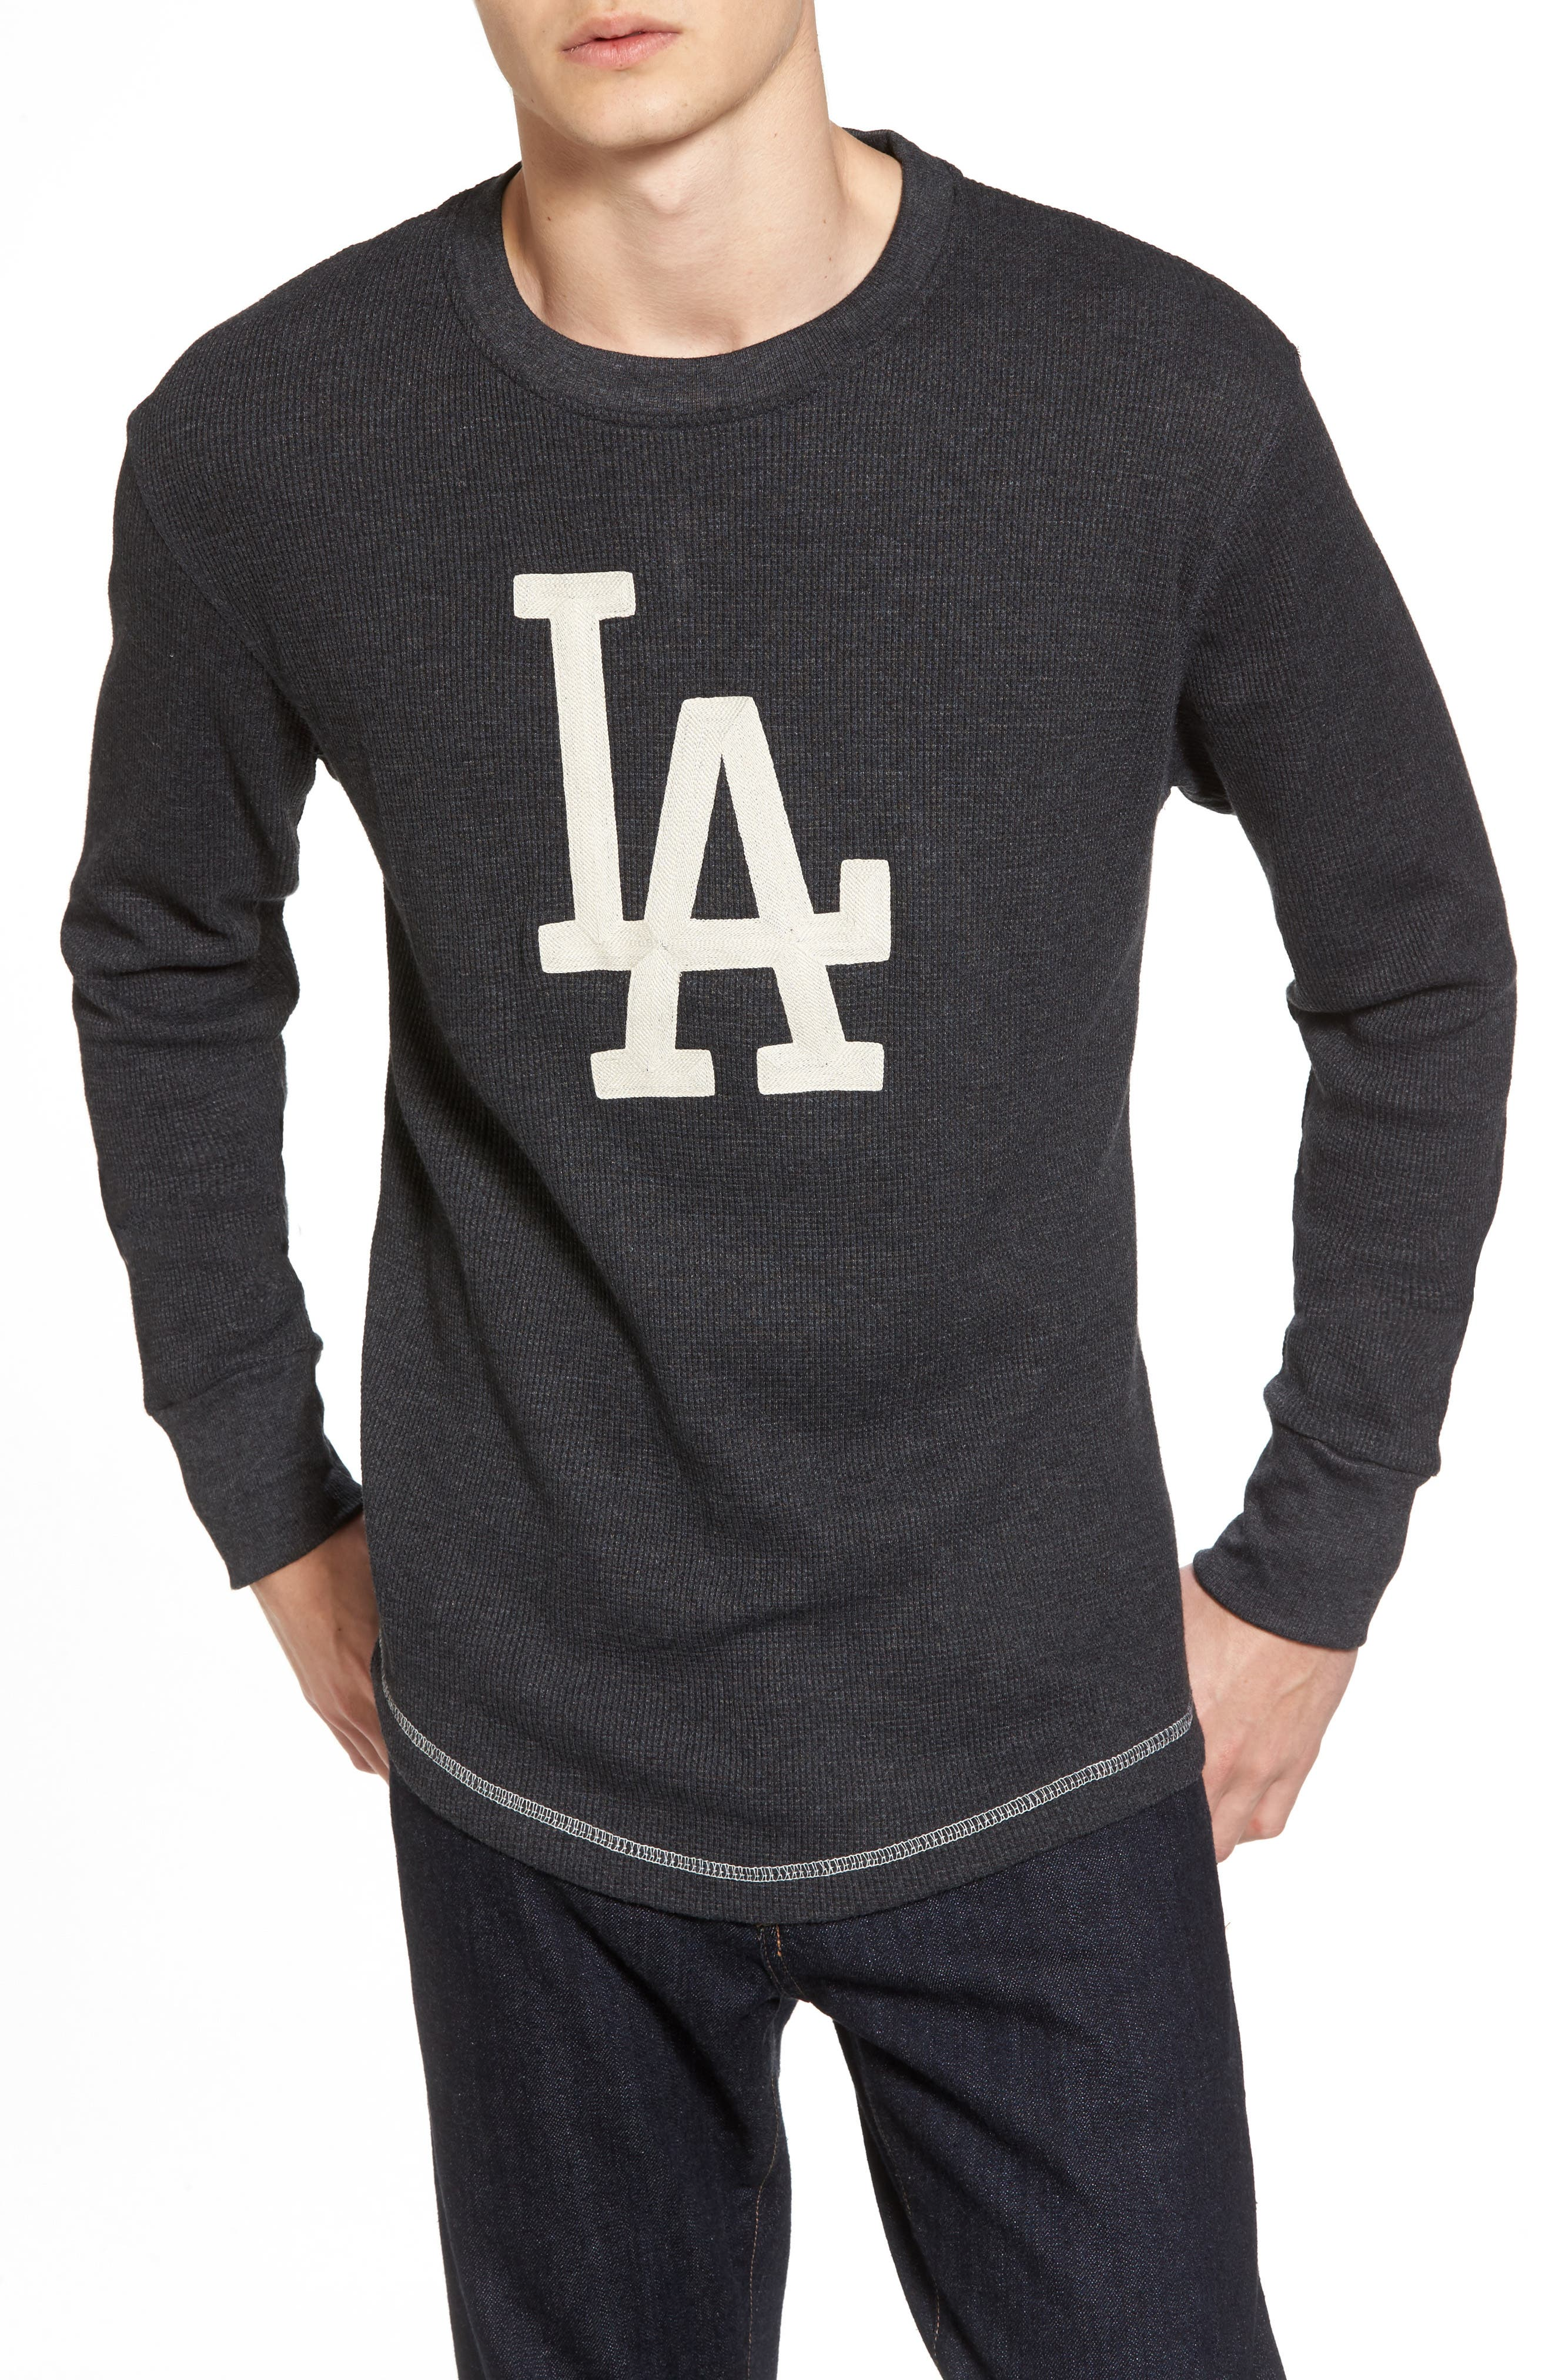 Los Angeles Dodgers Embroidered Long Sleeve Thermal Shirt,                         Main,                         color, Black